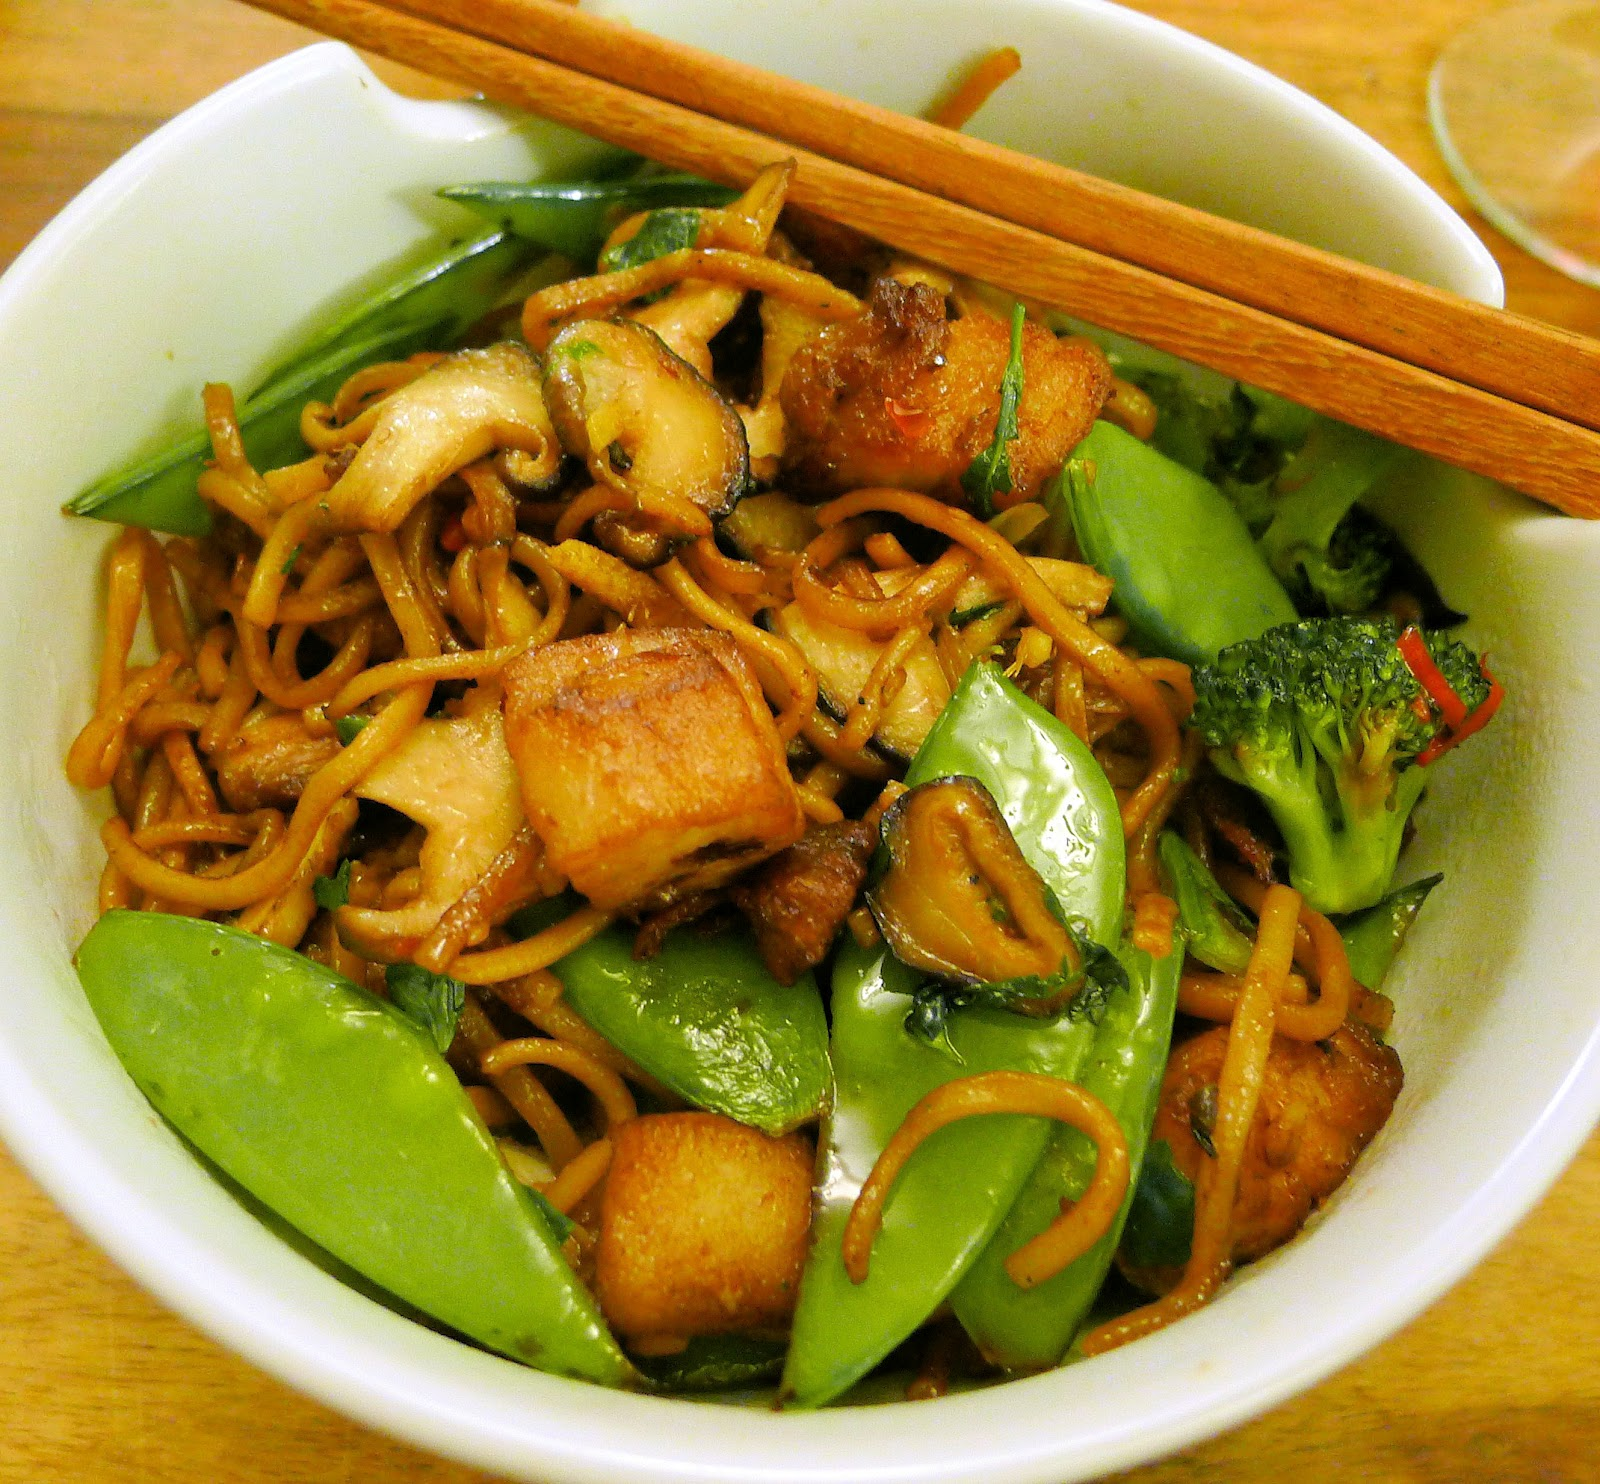 Culinary Adventures in London: Ginger Pork & Noodle Stir-fry